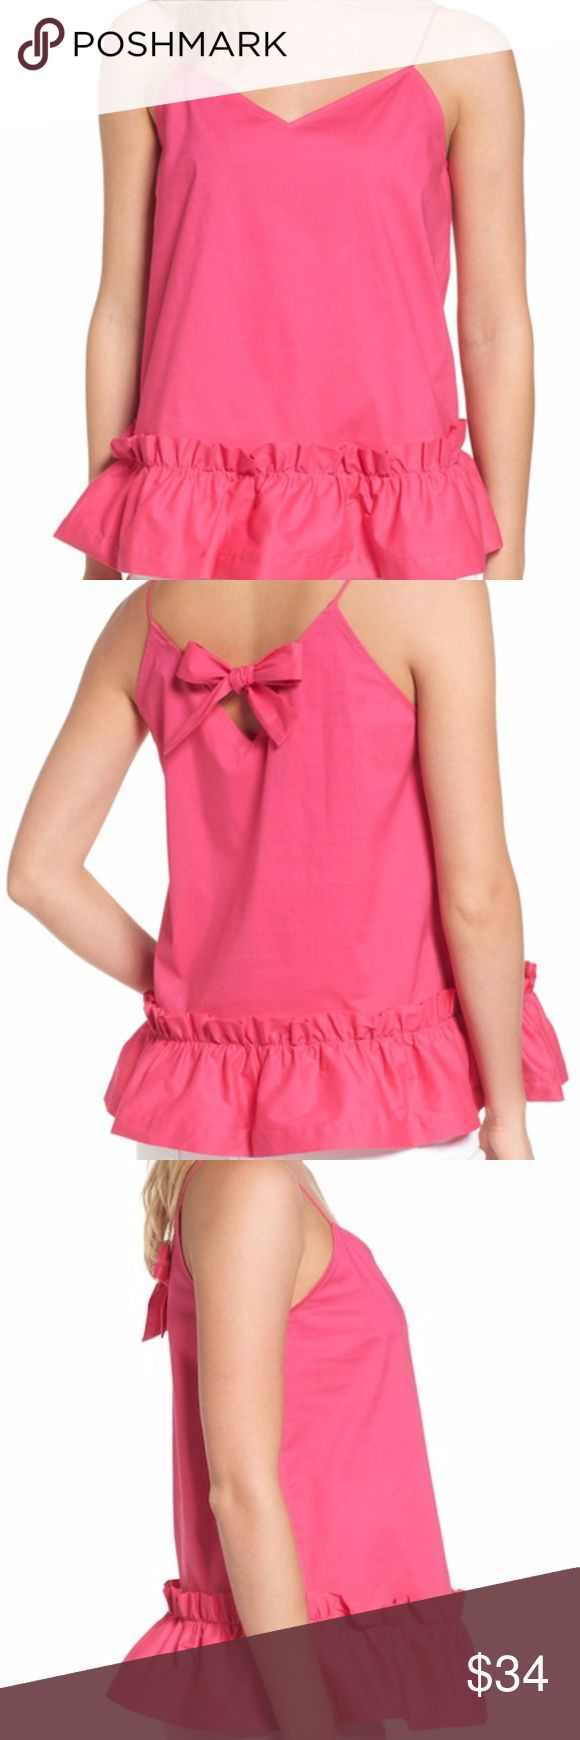 """NWT Pleione Bow Back Tank Fuschia XL New with tags! Gorgeous tank from Pleione. Adorable bow with keyhole on the back. Peplum on the bottom. Fuschia color. Size Extra Large. Beautiful, fun top! Perfect condition, brand new!  Pit to pit laying flat: 18"""" Shoulder to hem: 28""""  Smoke free home. Pleione Tops Tank Tops"""